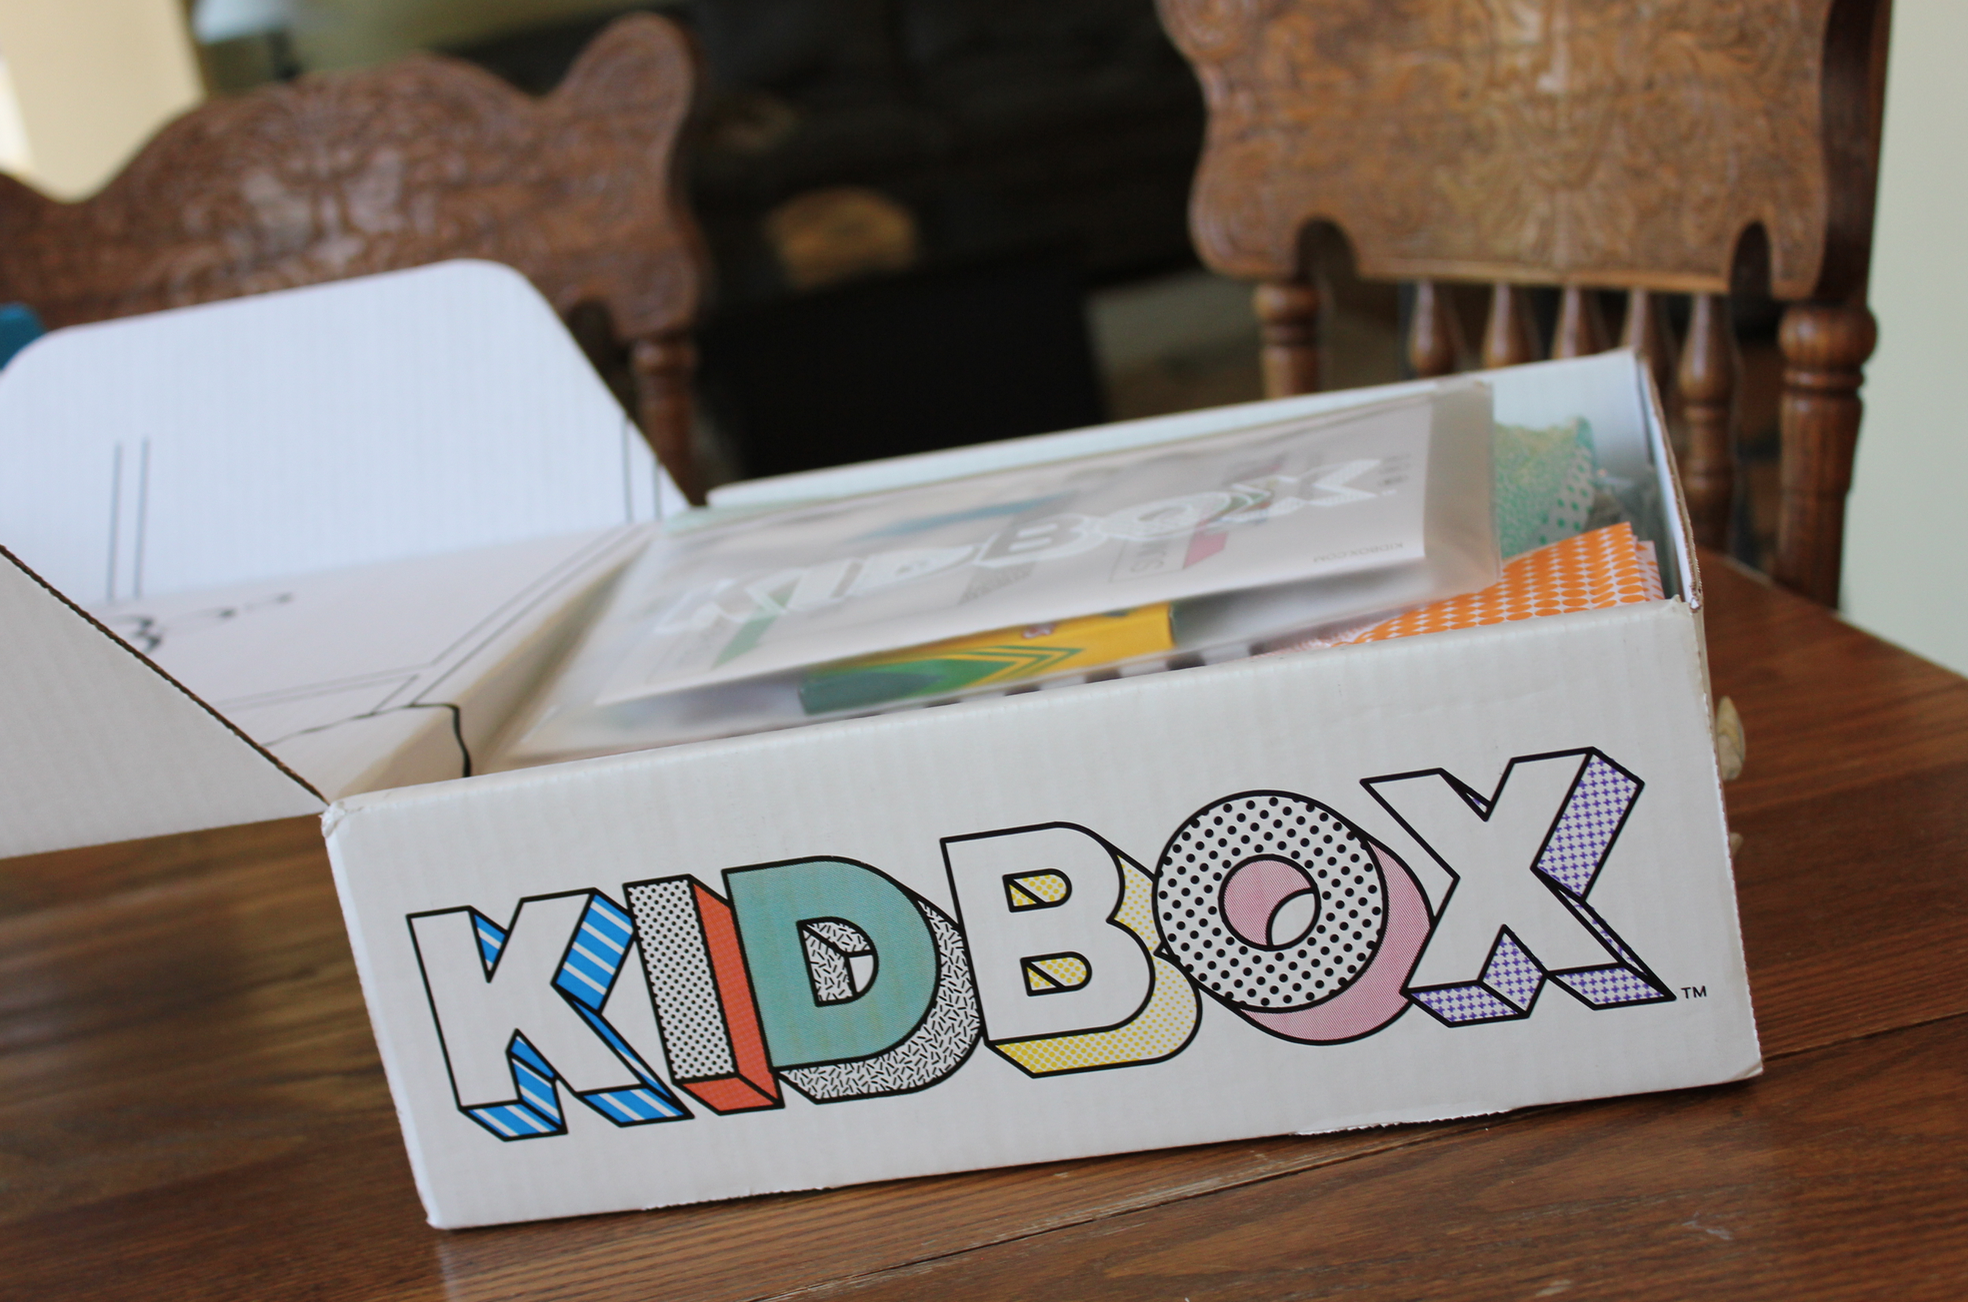 Kidbox Review & Giveaway